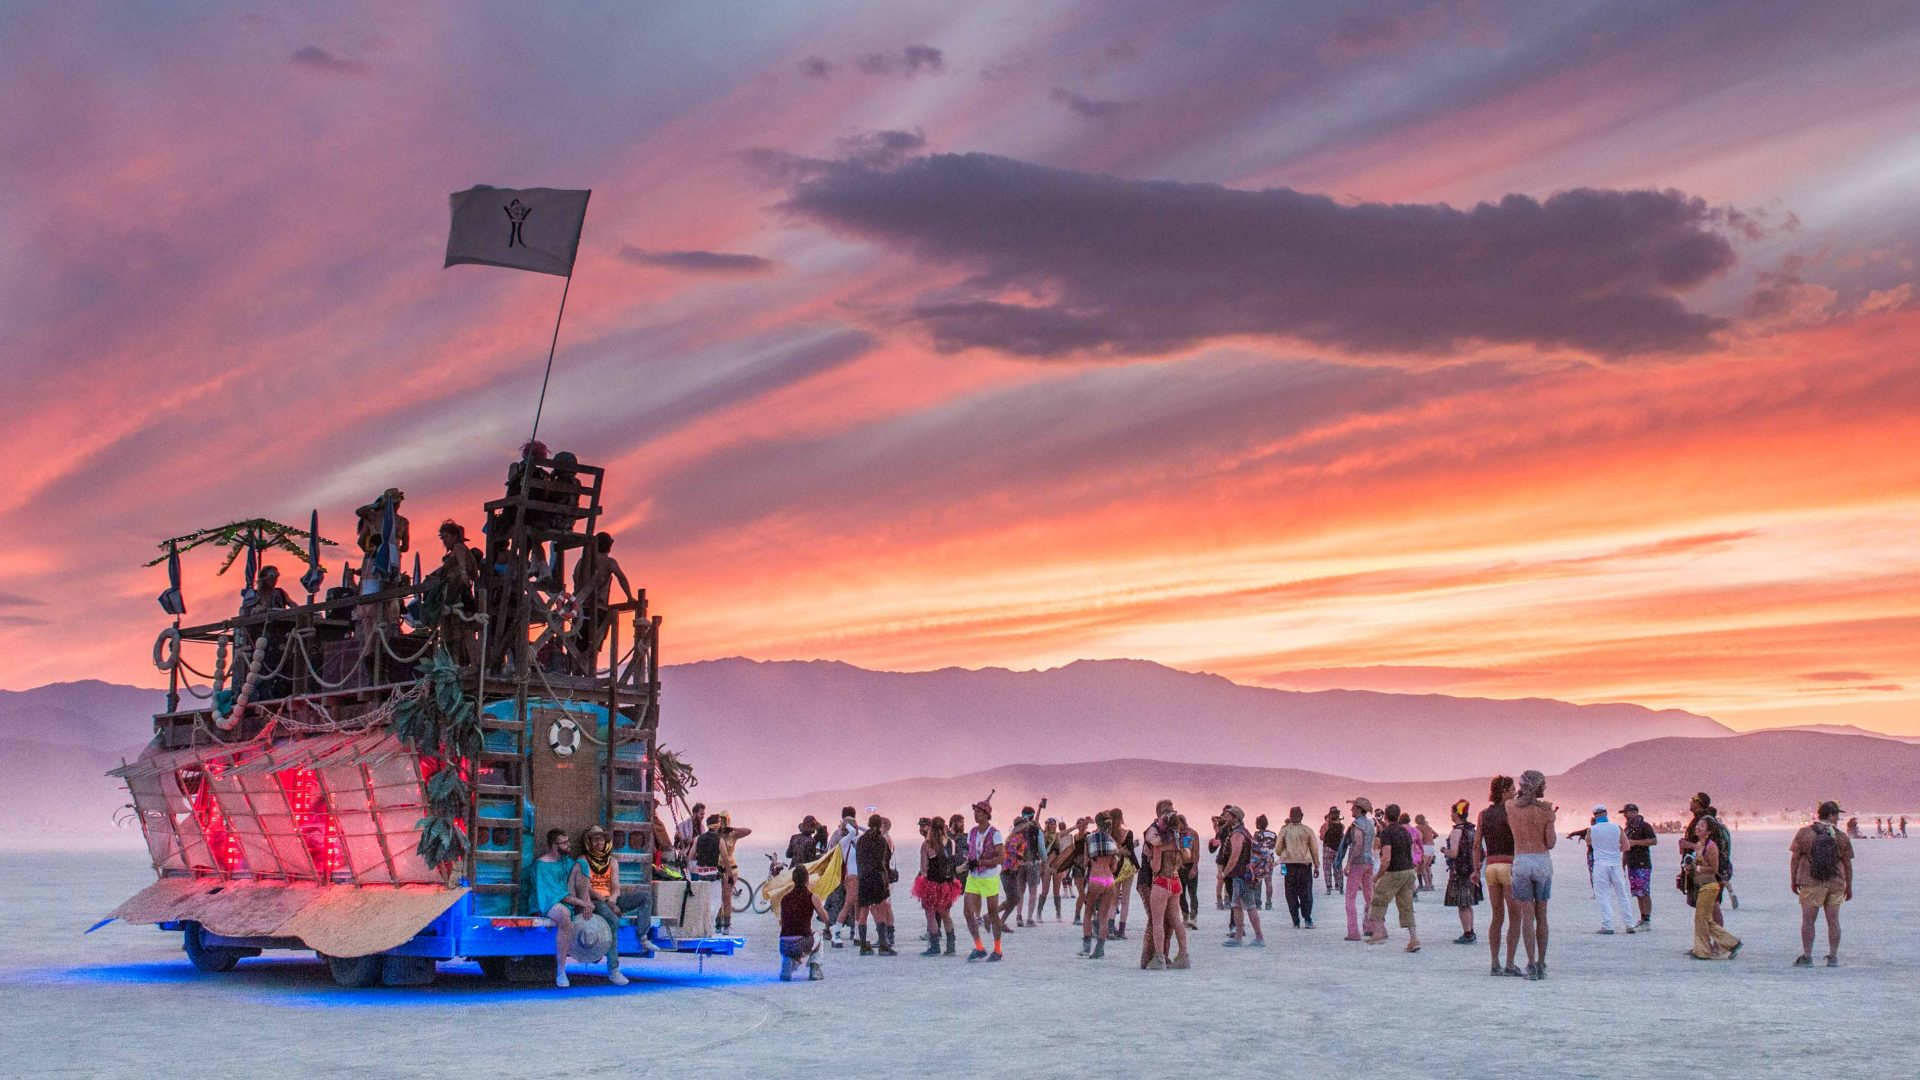 As the sun sets over Burning Man, an art car stands tall over attendees down below.